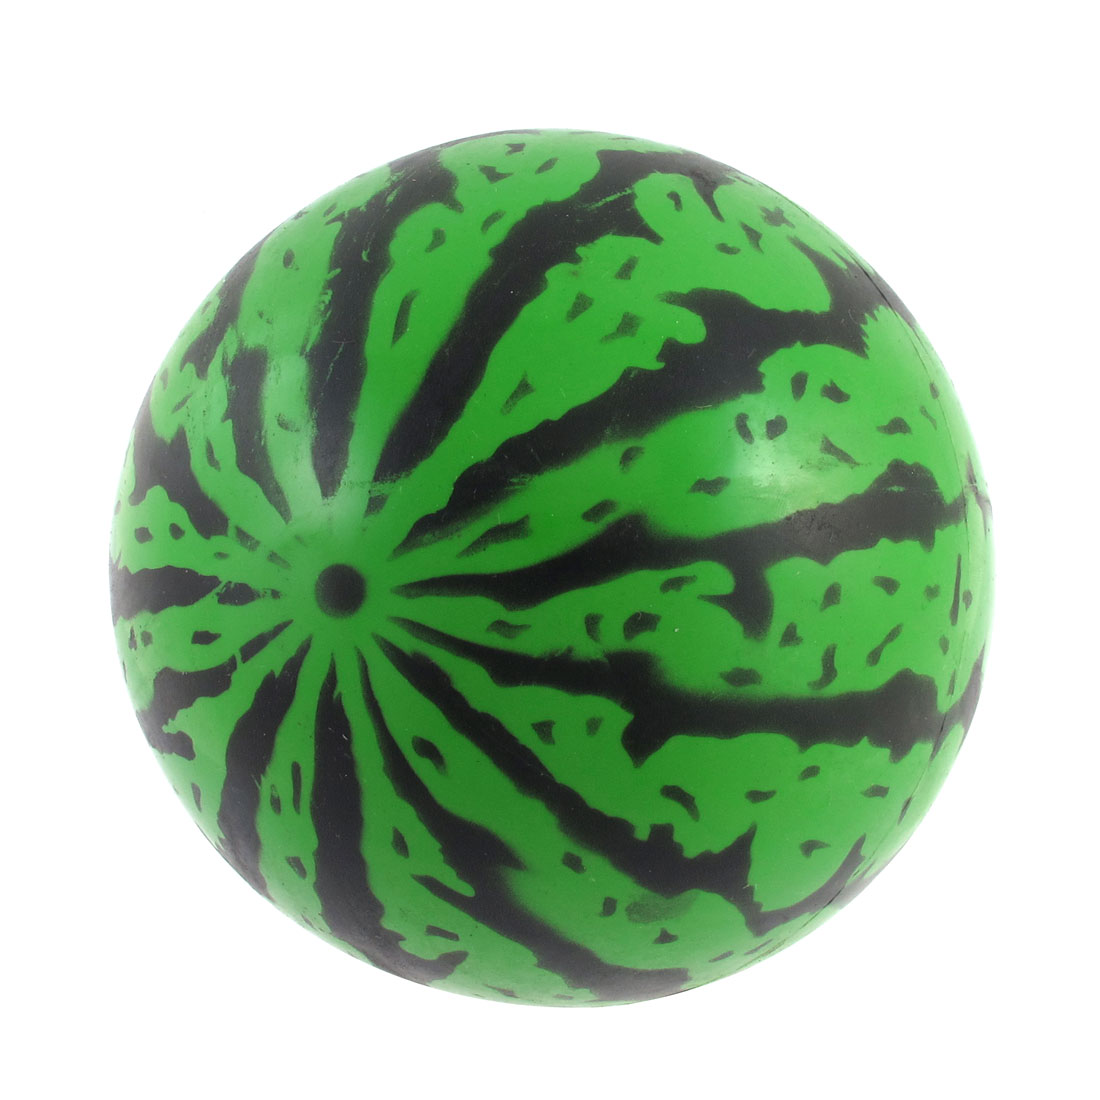 Green Black PVC 13.5cm Diameter Inflatable Watermelon Ball Playing Toy